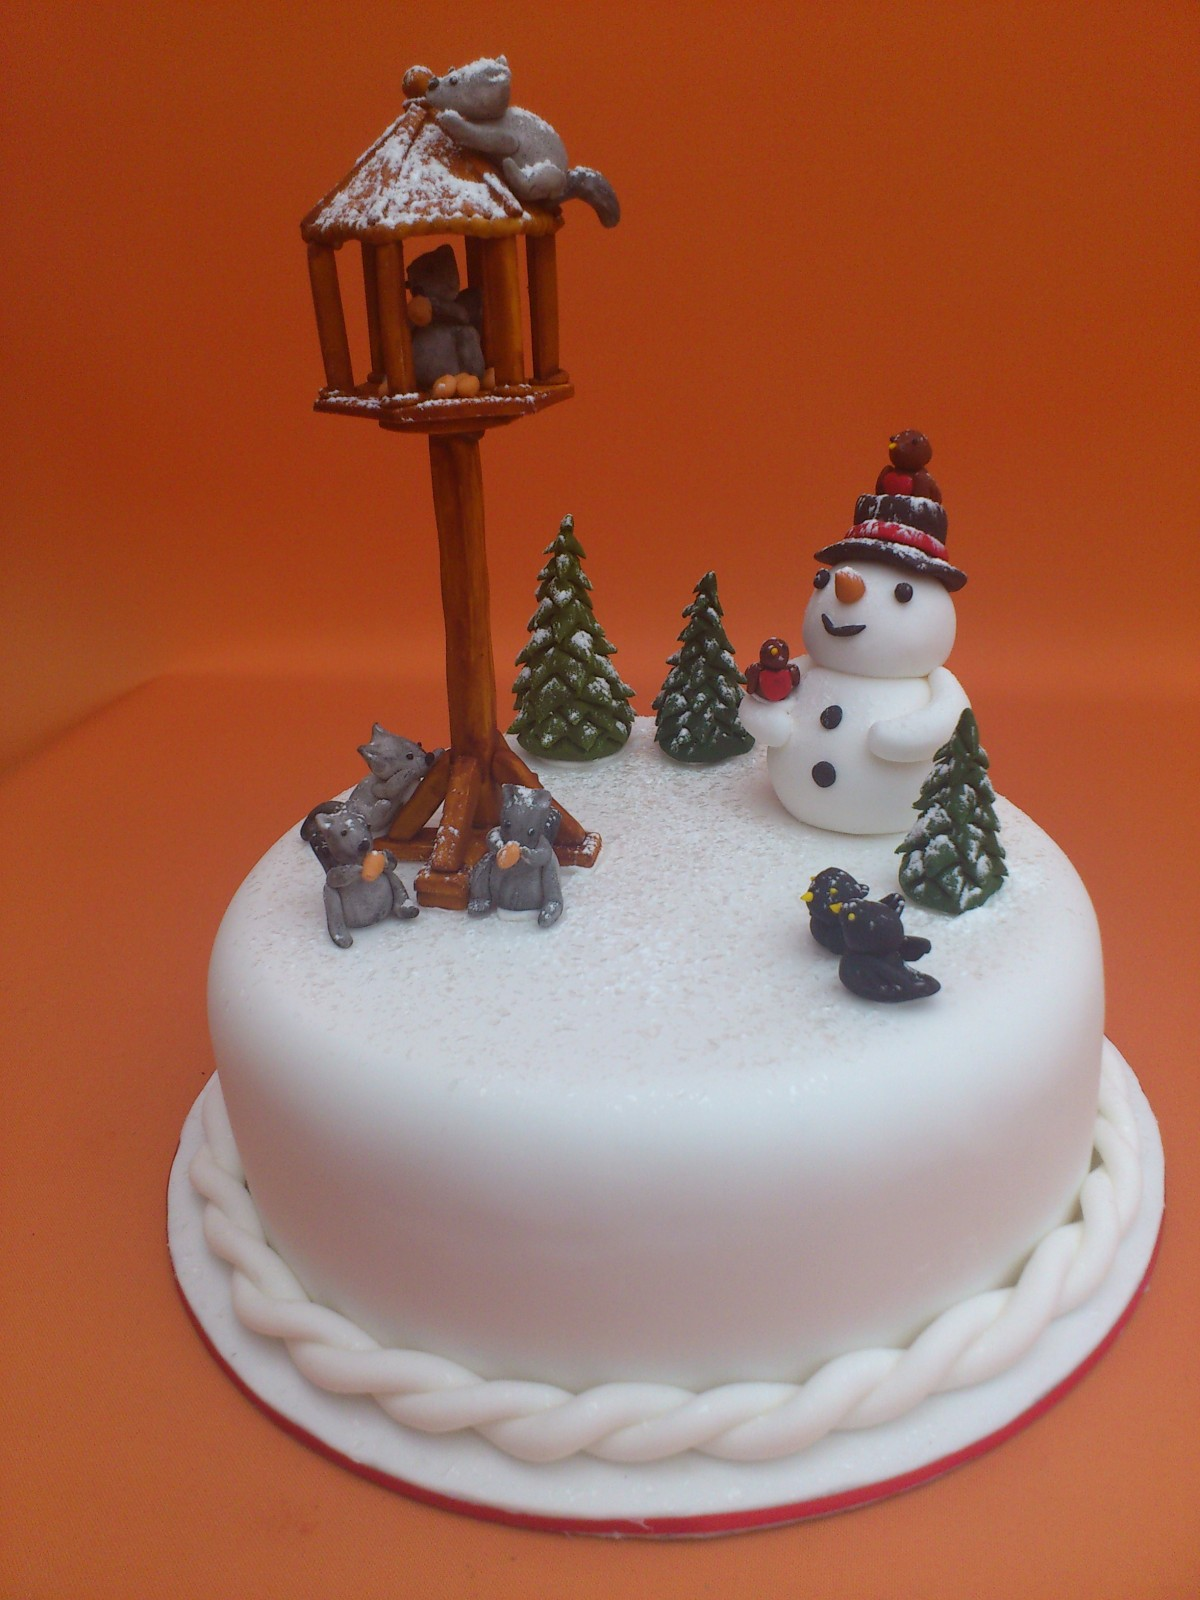 Novelty Christmas Cake Images : Novelty Christmas Cake With Bird Table Squirrels and ...